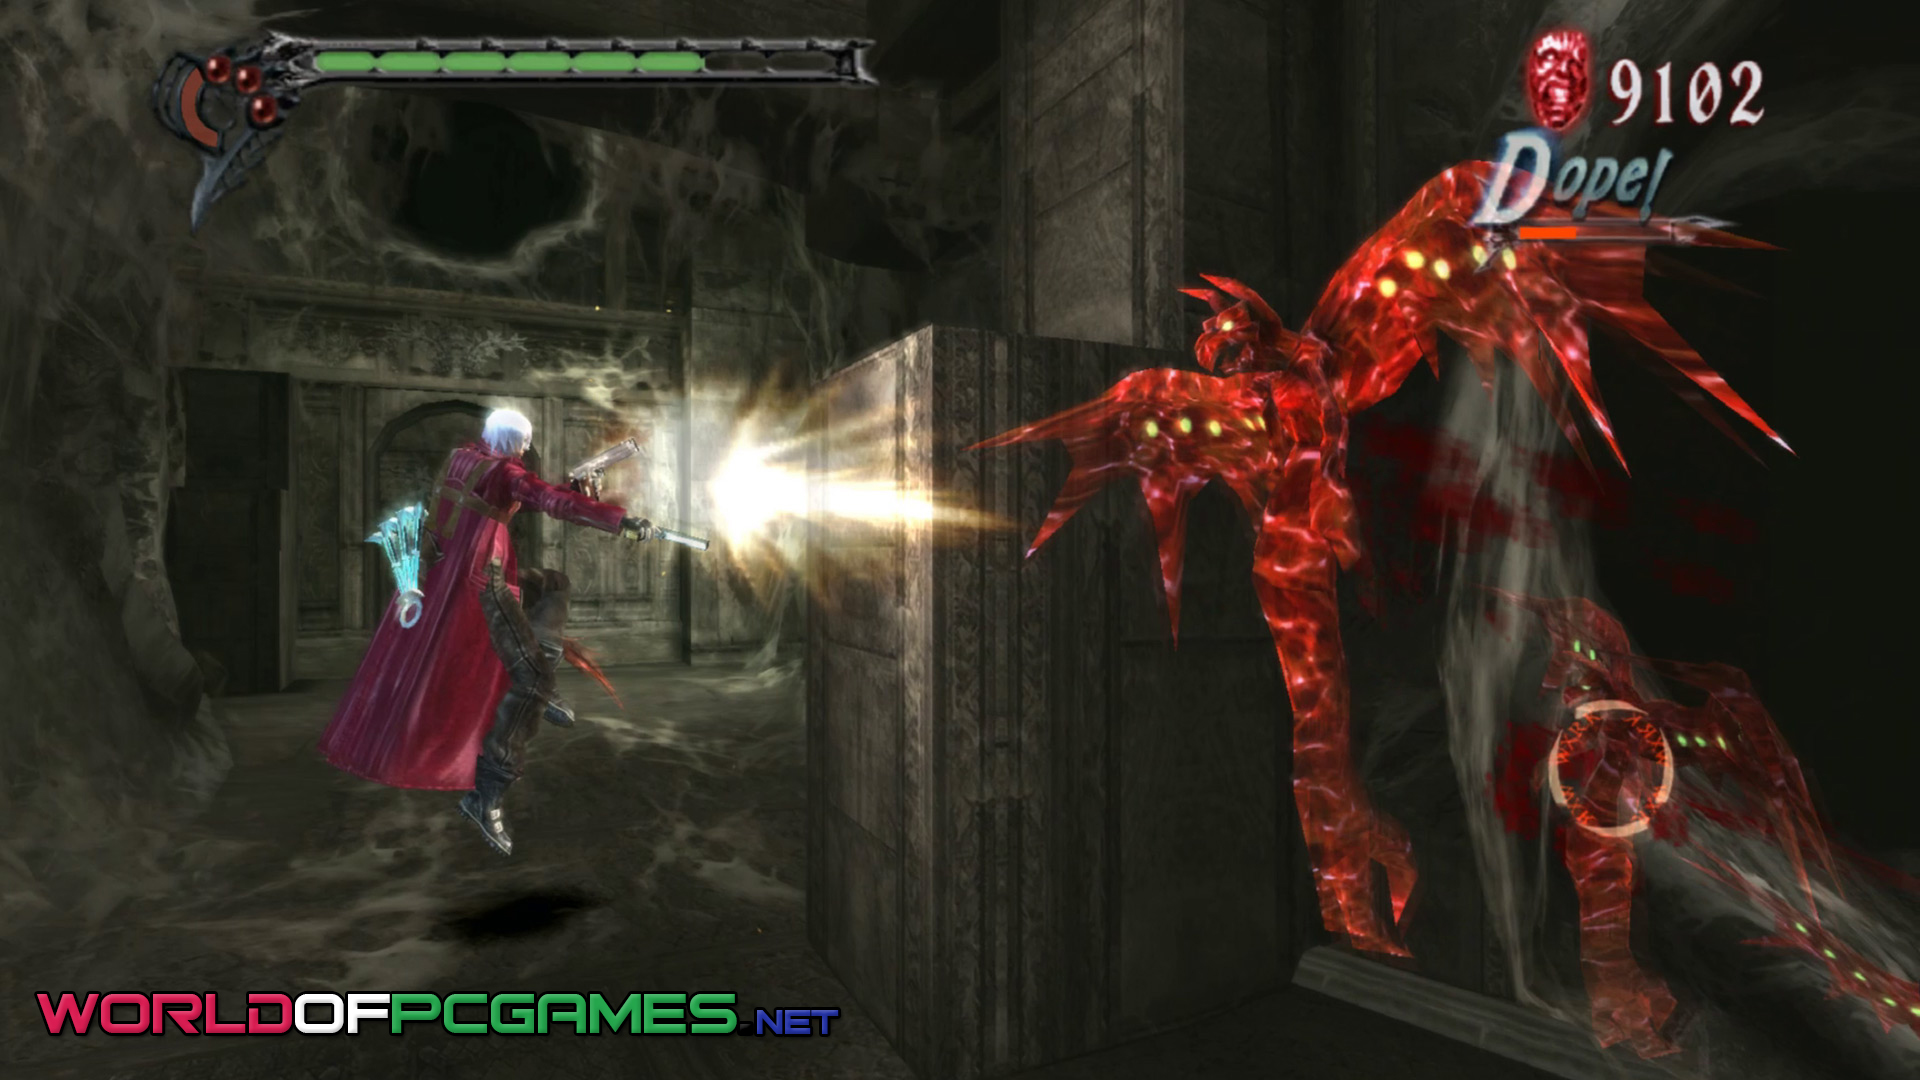 Devil May Cry 3 Free Download Special Edition PC Game By Worldofpcgames.com